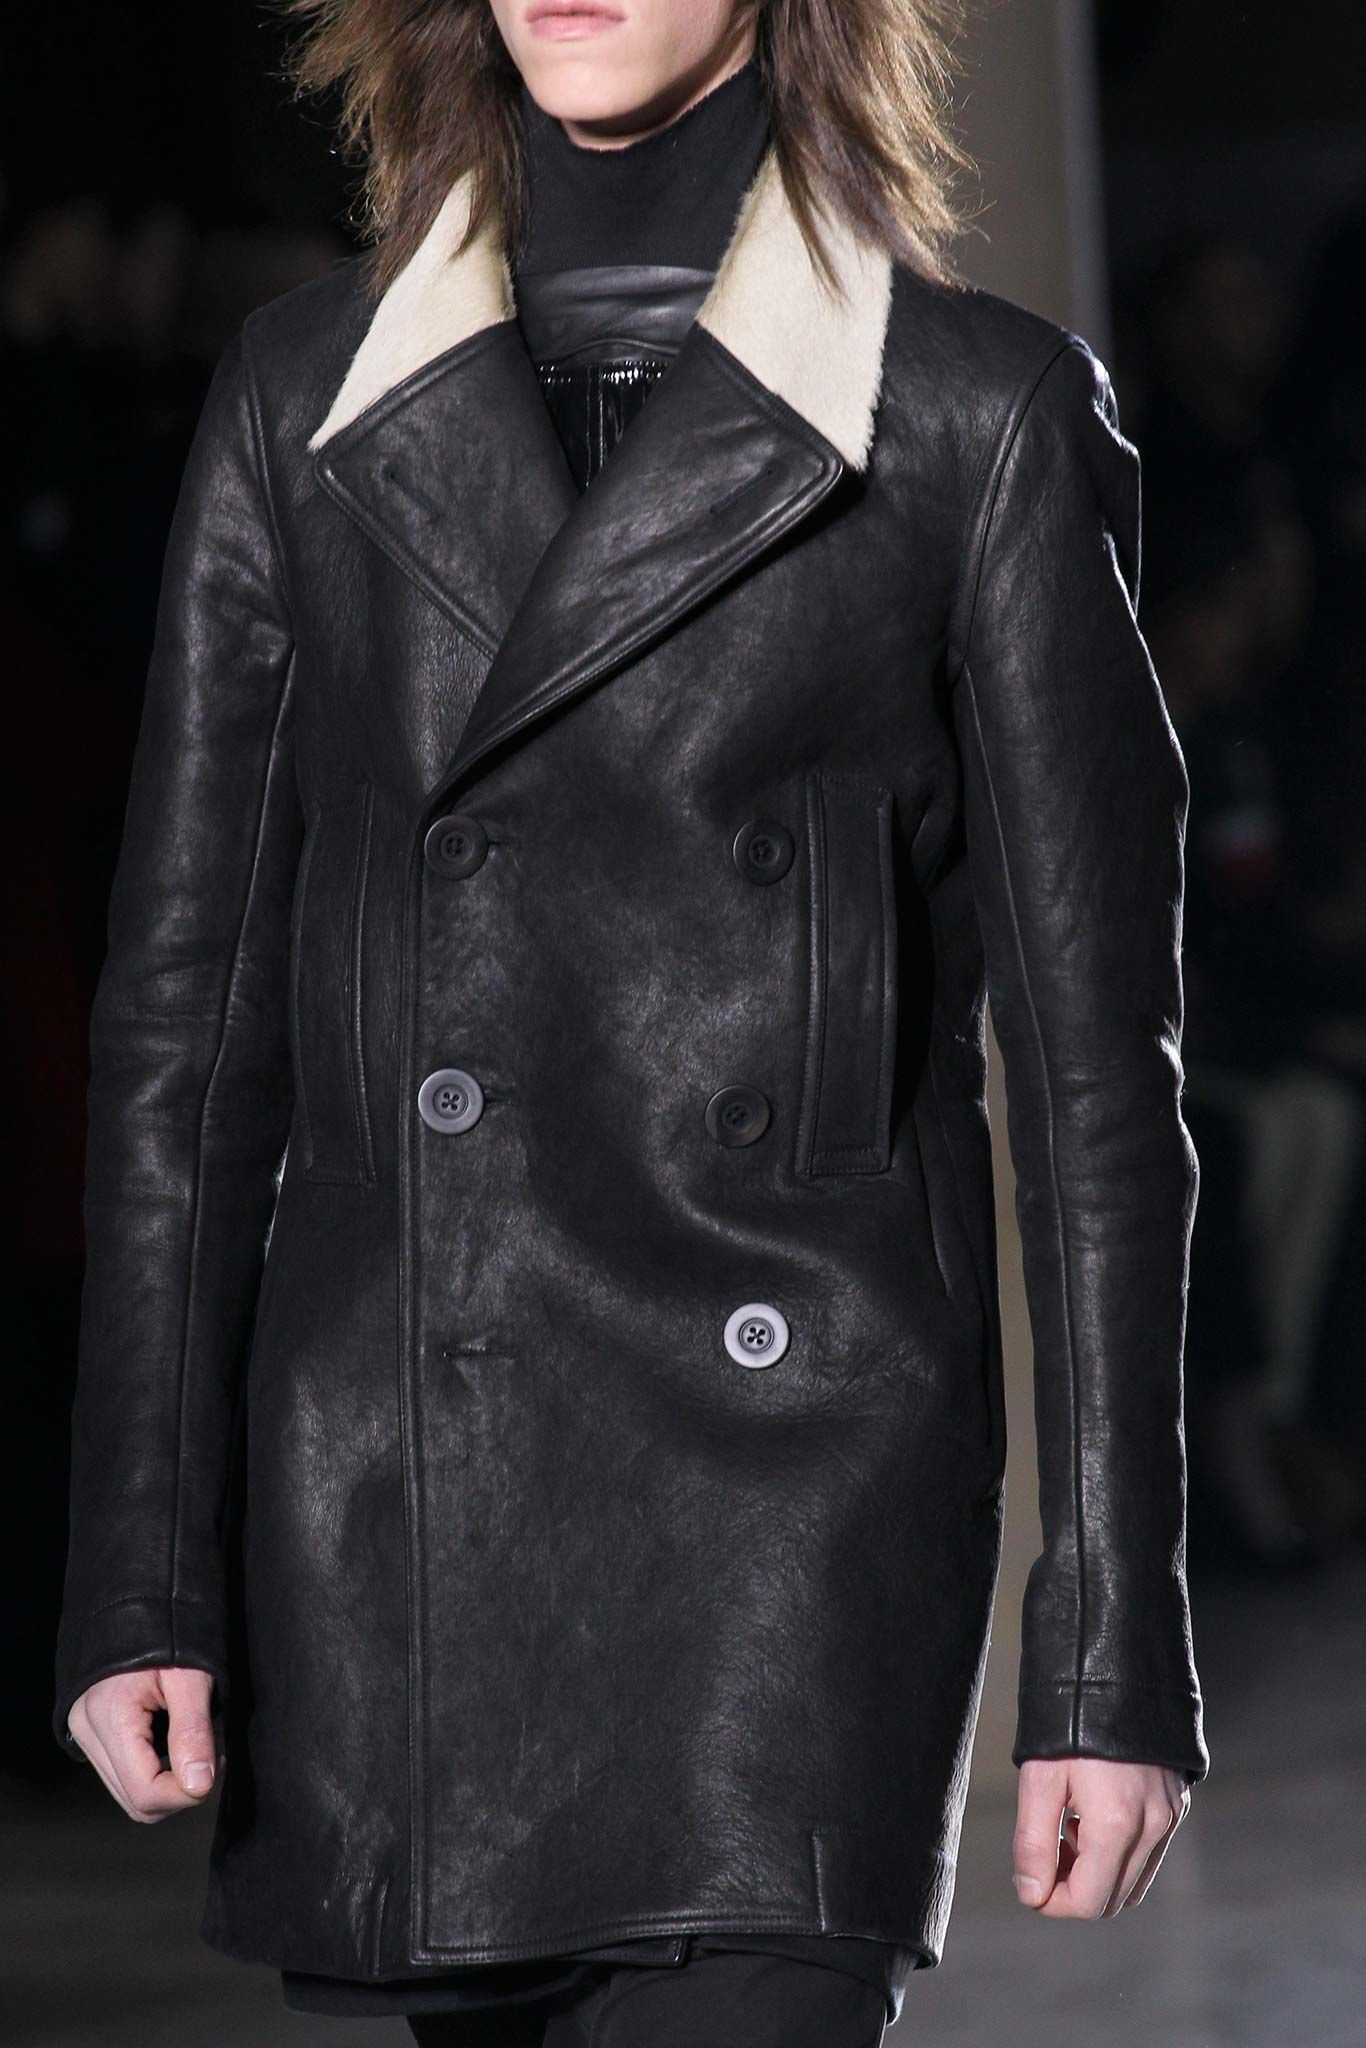 Rick Owens Fall 2015 Menswear Fashion Show (With images